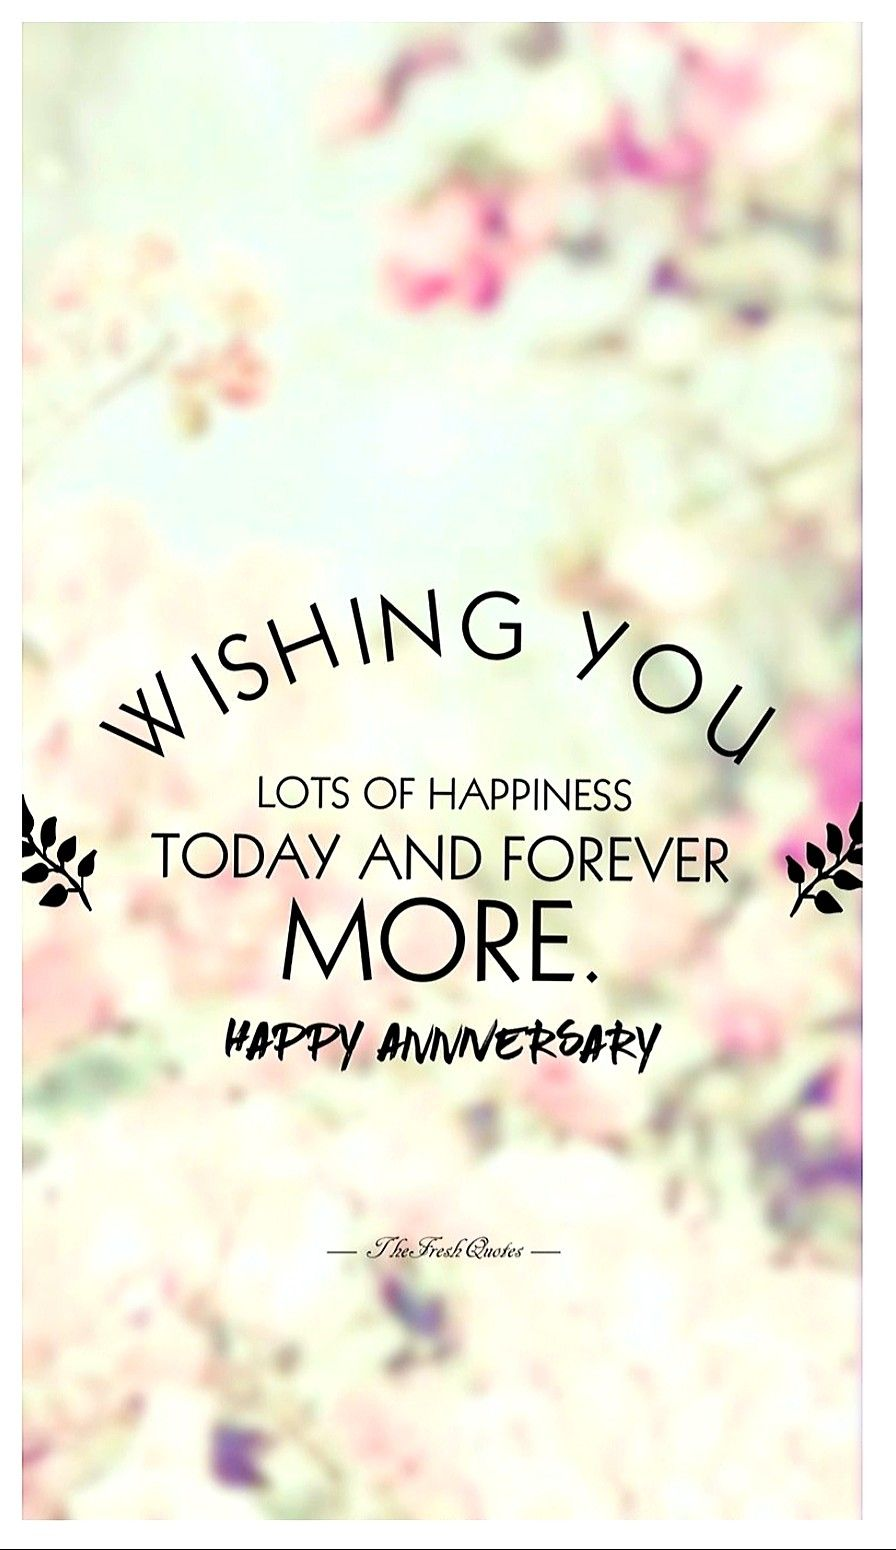 Pin By Julene Yager On Christmas Happy Anniversary Quotes Happy Anniversary Wishes Anniversary Wishes Quotes